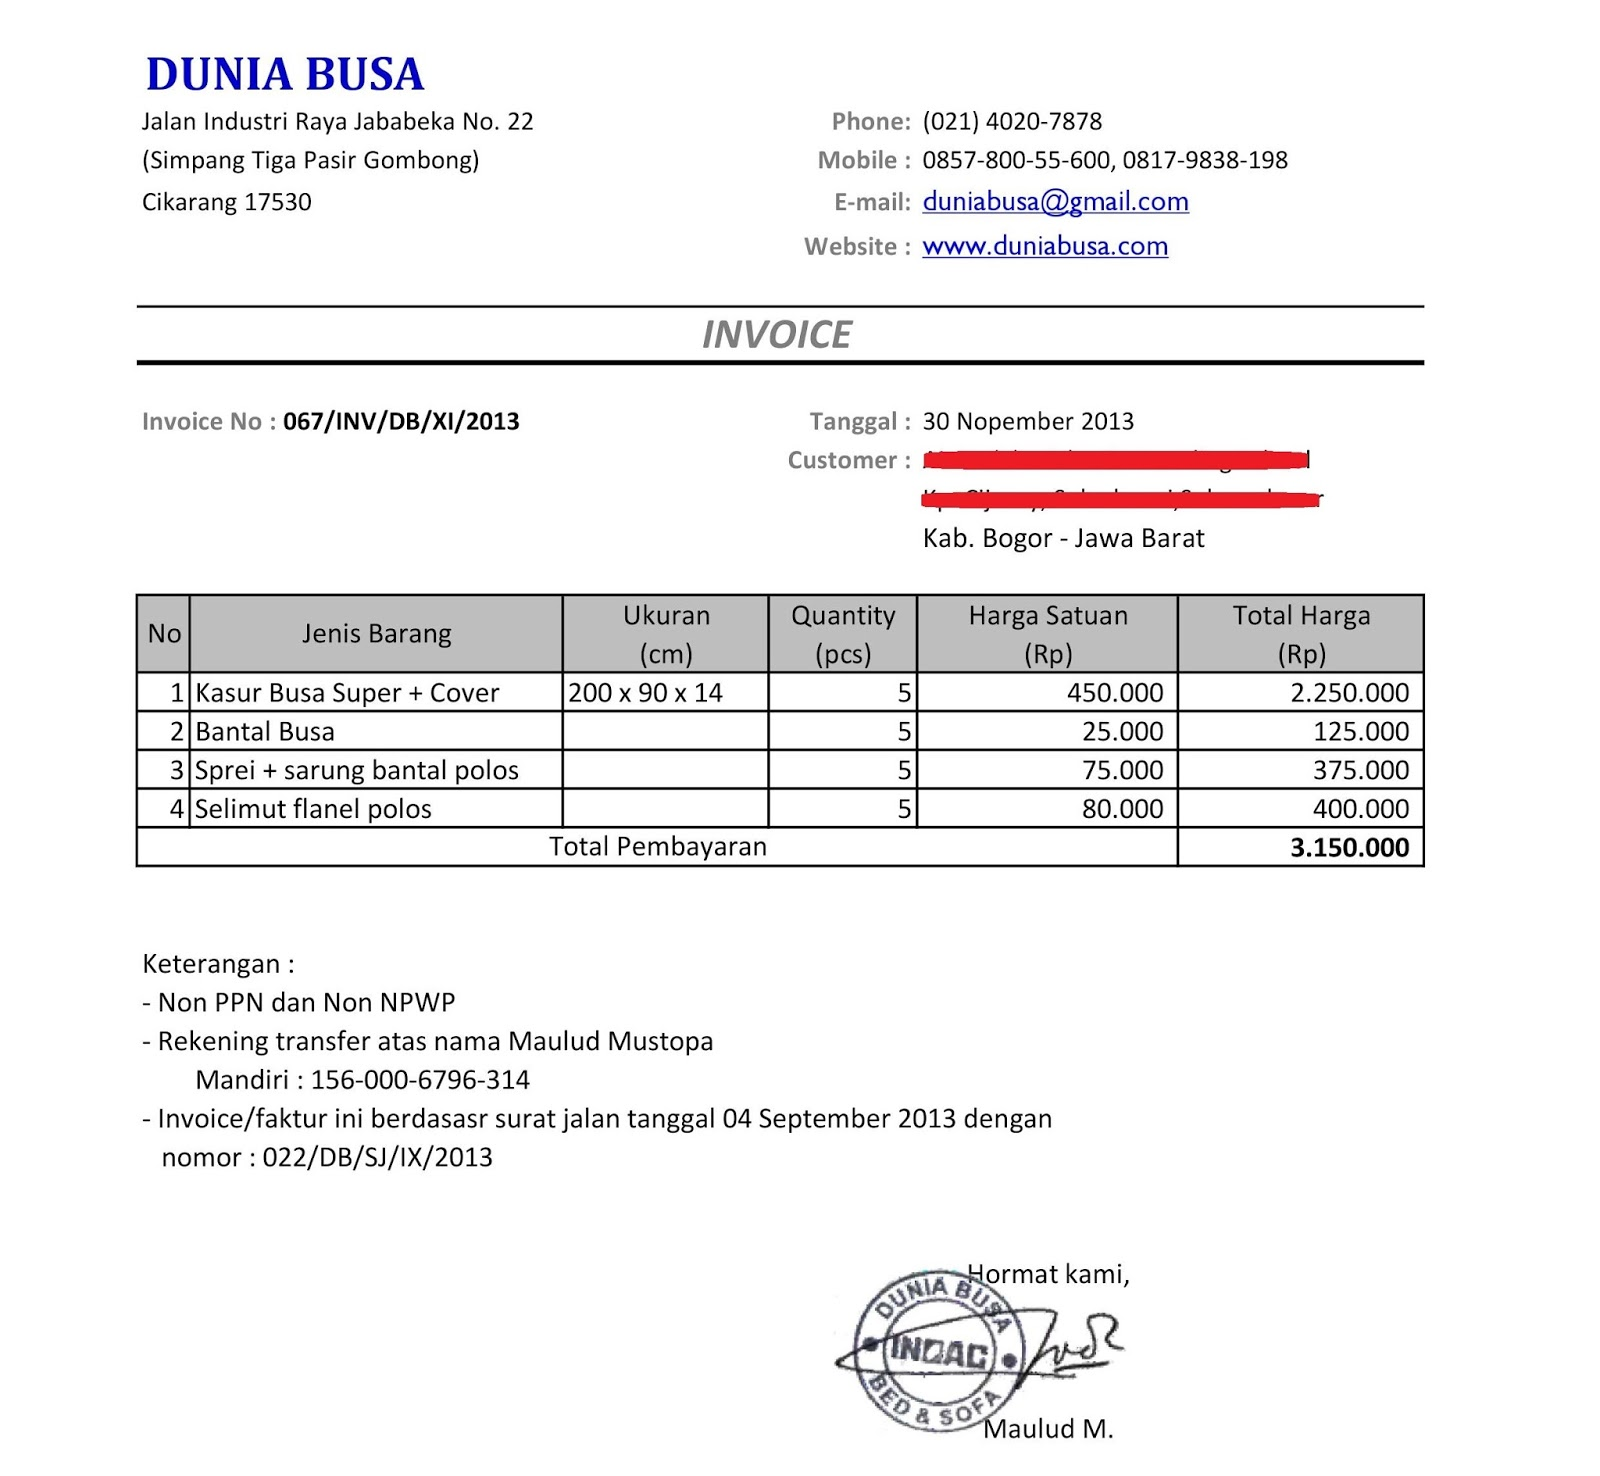 Pigbrotherus  Unusual Free Invoice Online  Create Invoice Online  Invoice Template  With Great Contoh Format Invoice Atau Surat Tagihan  Brankas Arsip  Free Invoice Online With Astonishing Car Sales Invoice Template Free Also Pro Forma Invoice Meaning In Addition Dot Net Invoice And Invoice Design Software As Well As Just Invoices Additionally Demurrage Invoice From Sklepco With Pigbrotherus  Great Free Invoice Online  Create Invoice Online  Invoice Template  With Astonishing Contoh Format Invoice Atau Surat Tagihan  Brankas Arsip  Free Invoice Online And Unusual Car Sales Invoice Template Free Also Pro Forma Invoice Meaning In Addition Dot Net Invoice From Sklepco